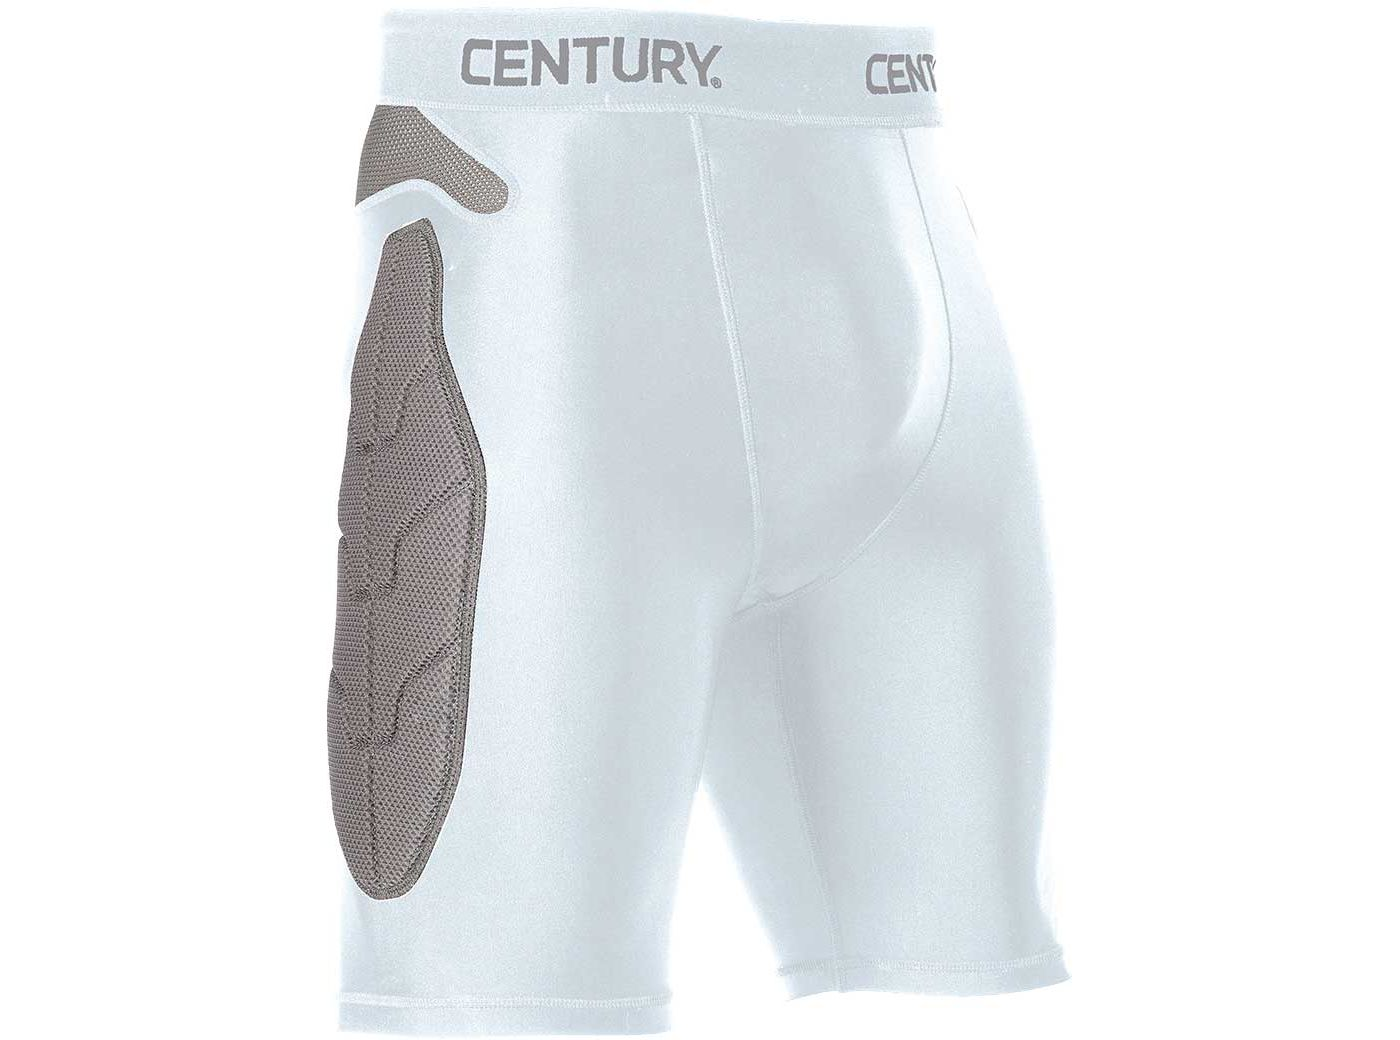 Century Youth Padded Compression Shorts